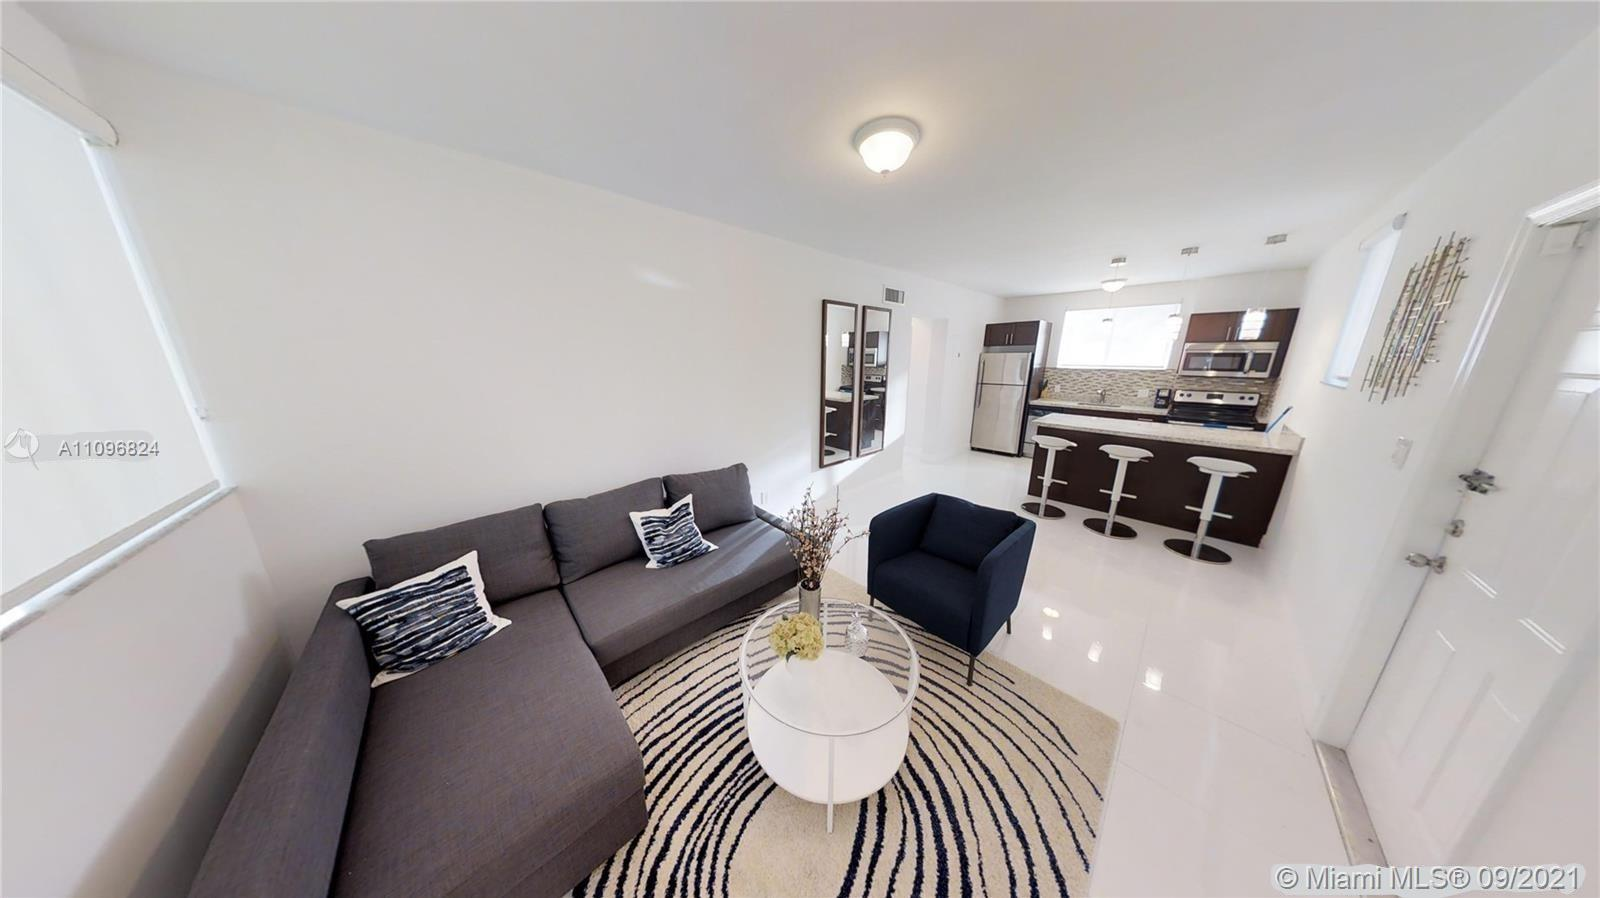 1 bedroom and 1 bathroom completely remodeled (unit comes furnished). Short term rental available (call for questions) Location: walking distance to the hottest area (Brickell) of Miami on the highways. 5 minutes to Miami International Airport, Miami Beach, 15 minutes to other shopping centers like Aventura Mall and Dolphin Mall with all the entertainment around the building: building has no amenities, but is secured, clean and close to everything. Great owner.